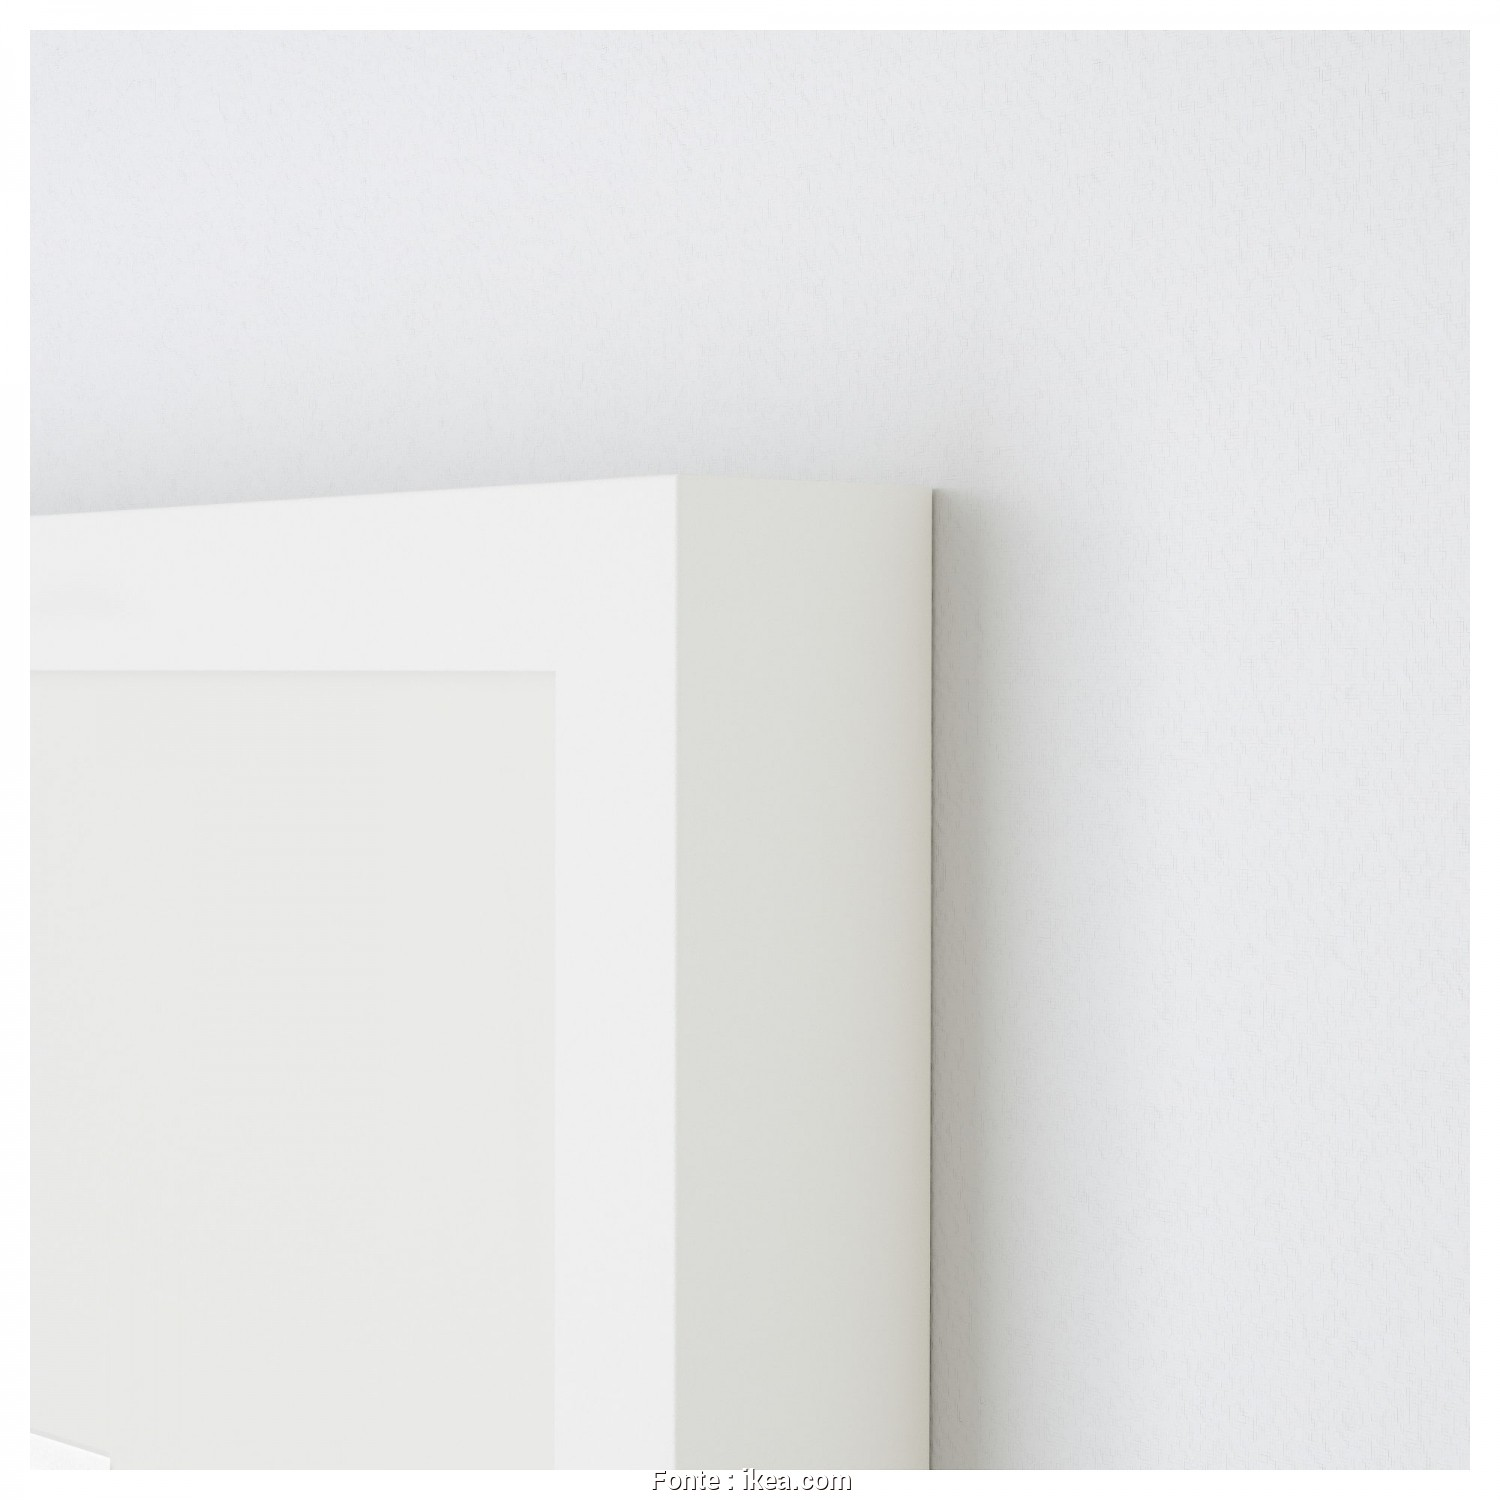 Copricuscini Ikea 50X50, Semplice IKEA RIBBA Frame, Can Place, Motif On, Front Or Back Of, Extra